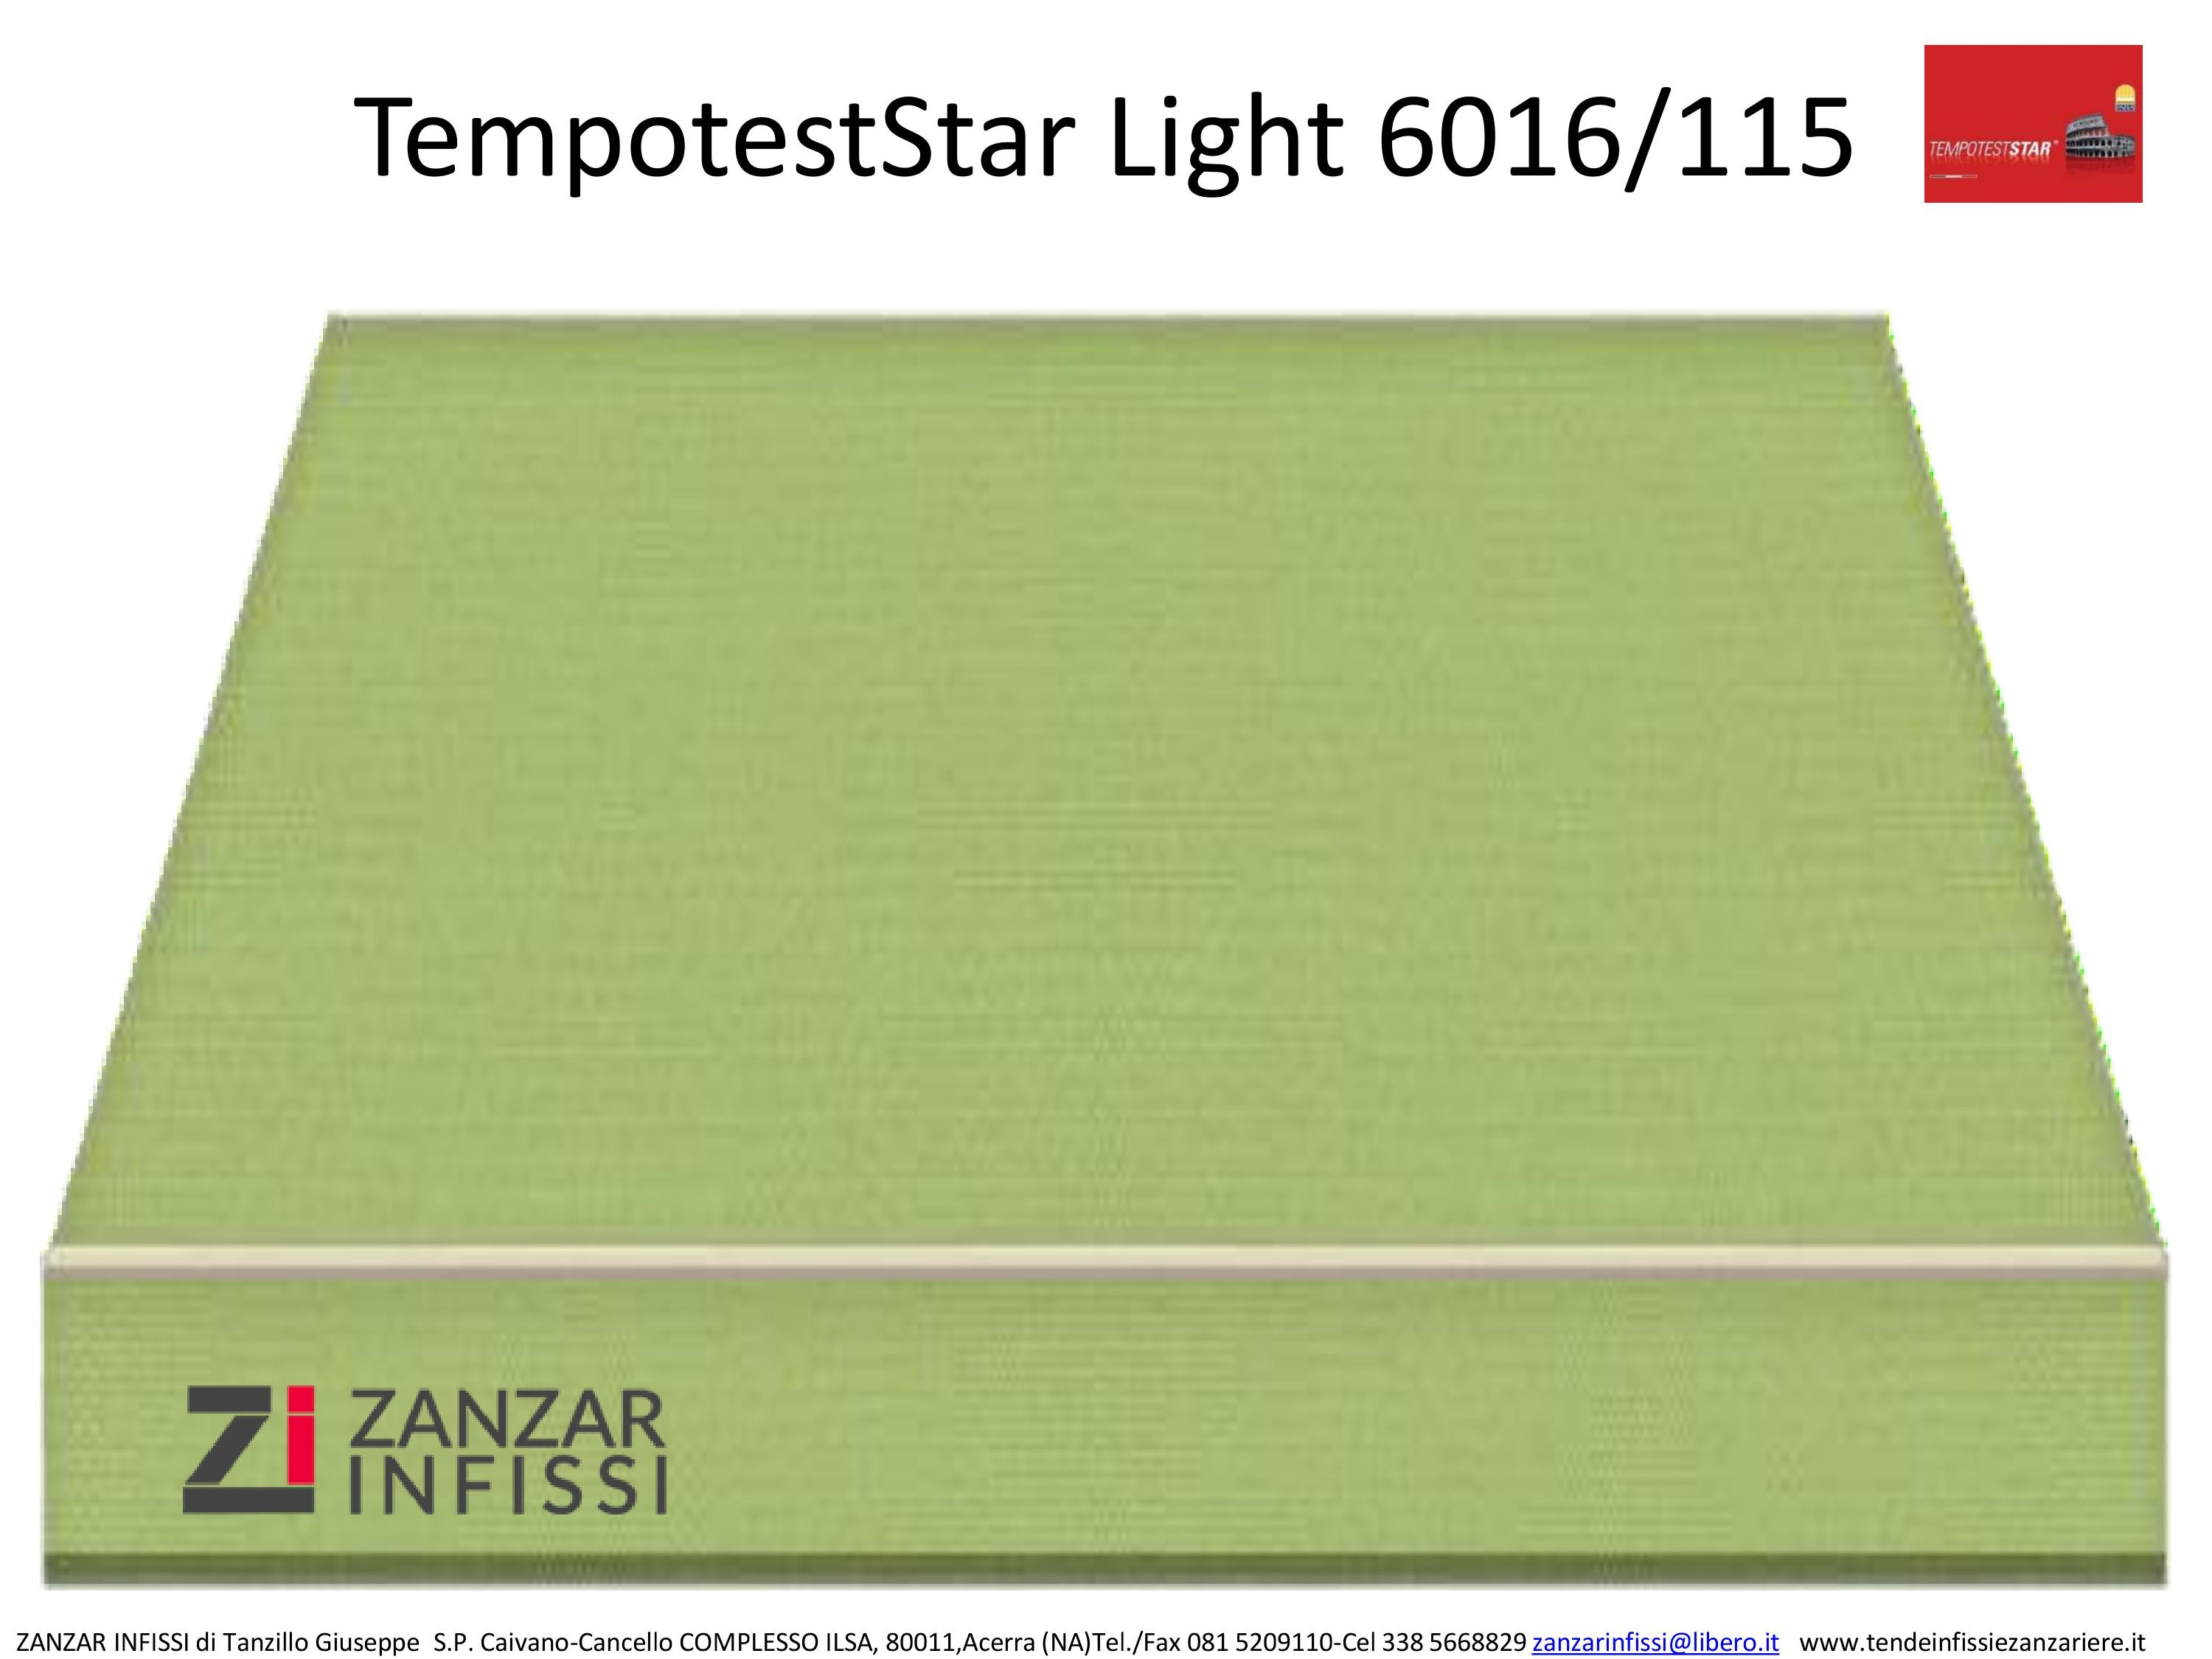 Tempotest star light 6016/115